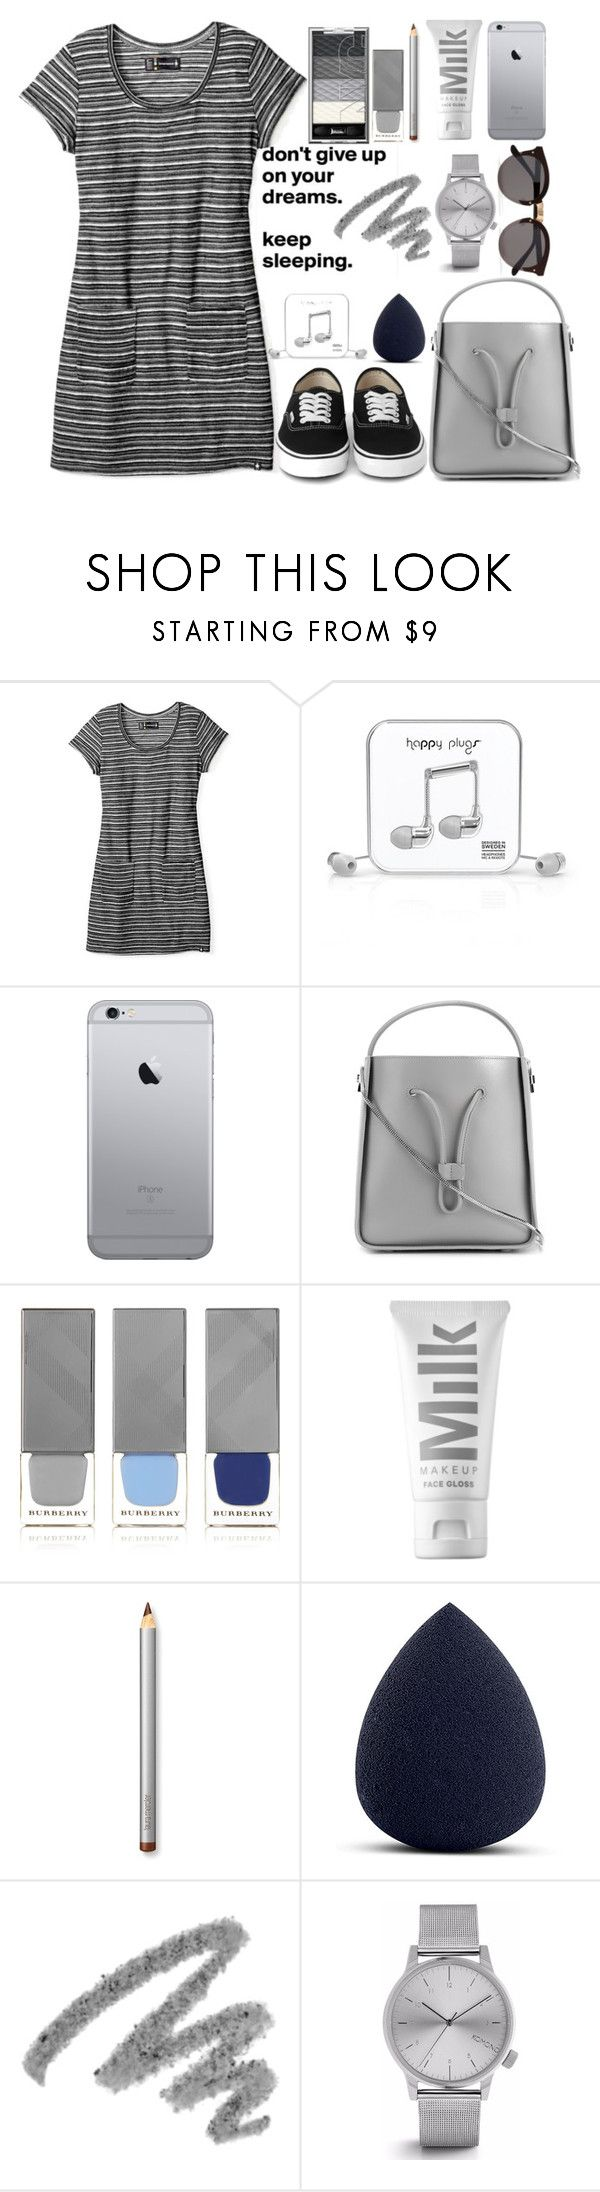 """T-Shirt Dress \\ QOTW. Do you work out?"" by missbeth1897 ❤ liked on Polyvore featuring Smartwool, Happy Plugs, 3.1 Phillip Lim, Burberry, MILK MAKEUP, Laura Mercier, Yves Saint Laurent, Komono and Illesteva"